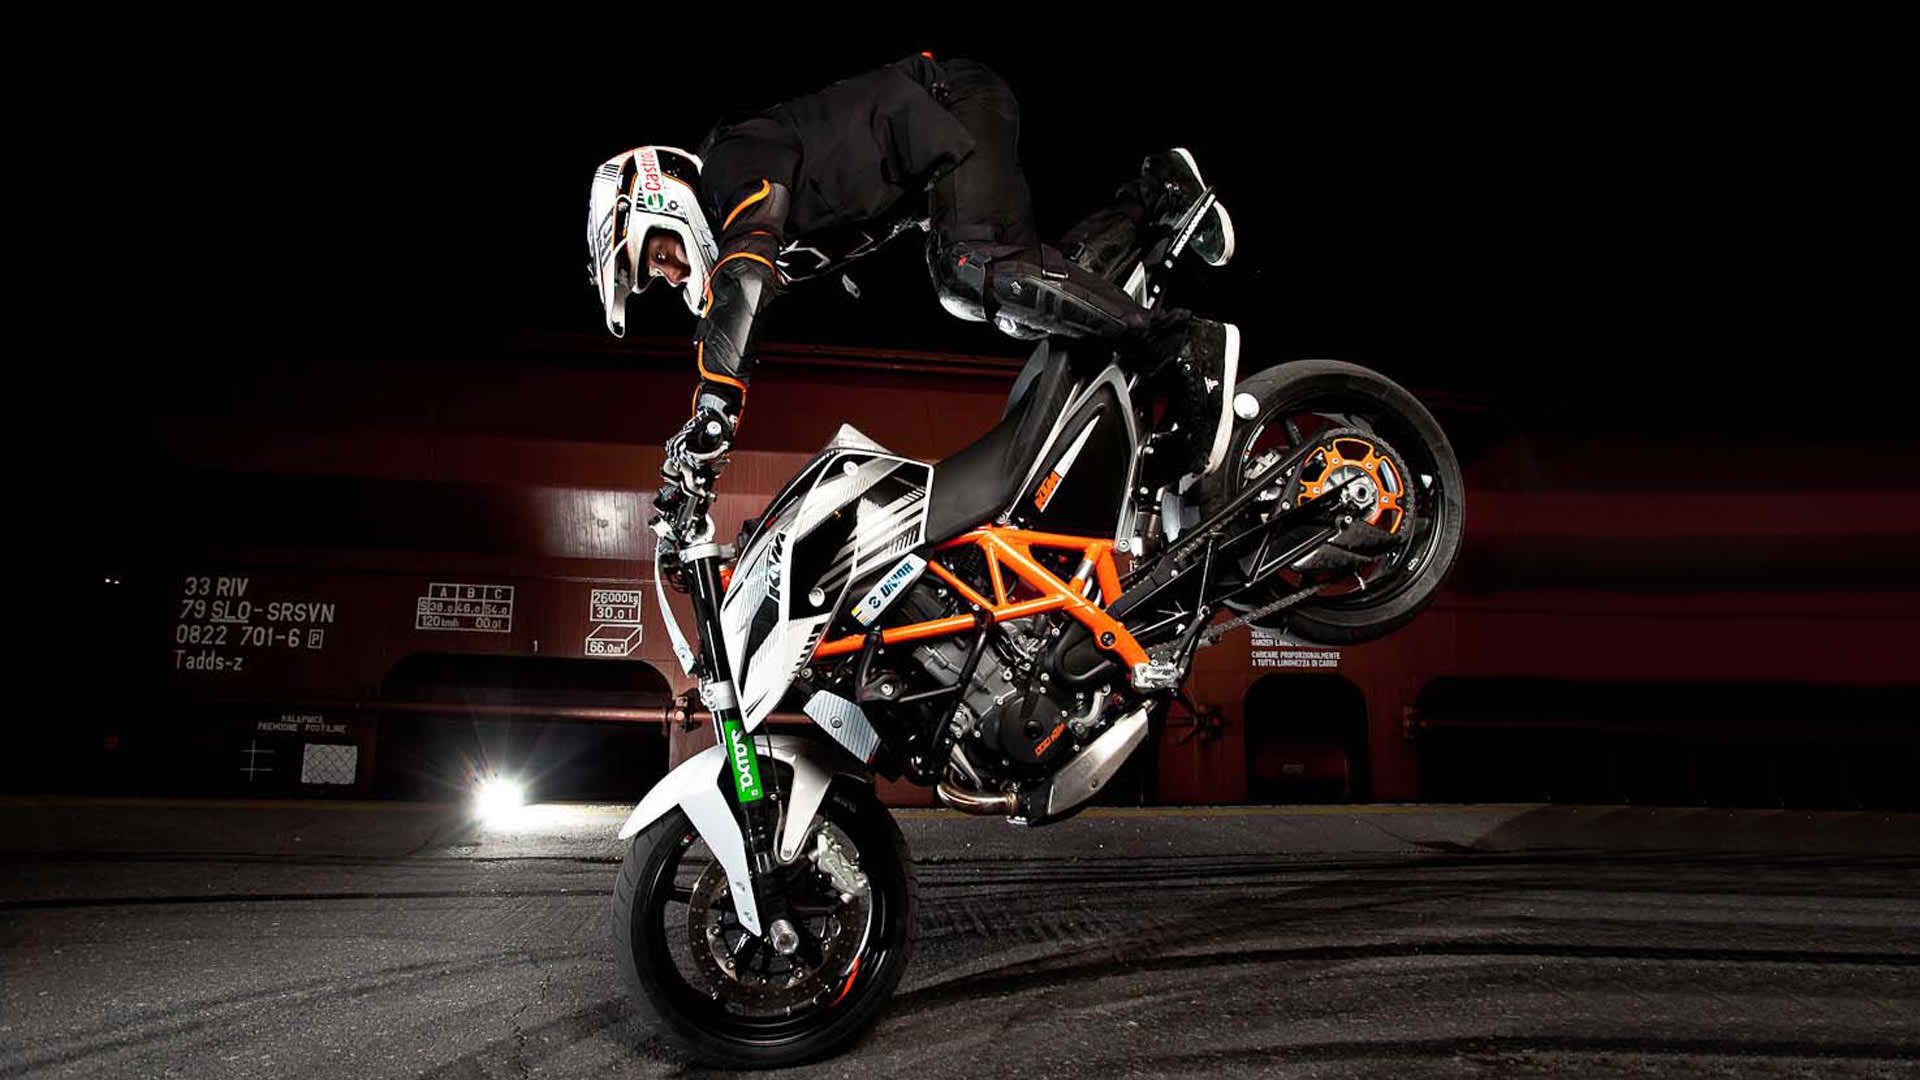 bike-stunt-full-hd-wallpapers | wallpaper.wiki